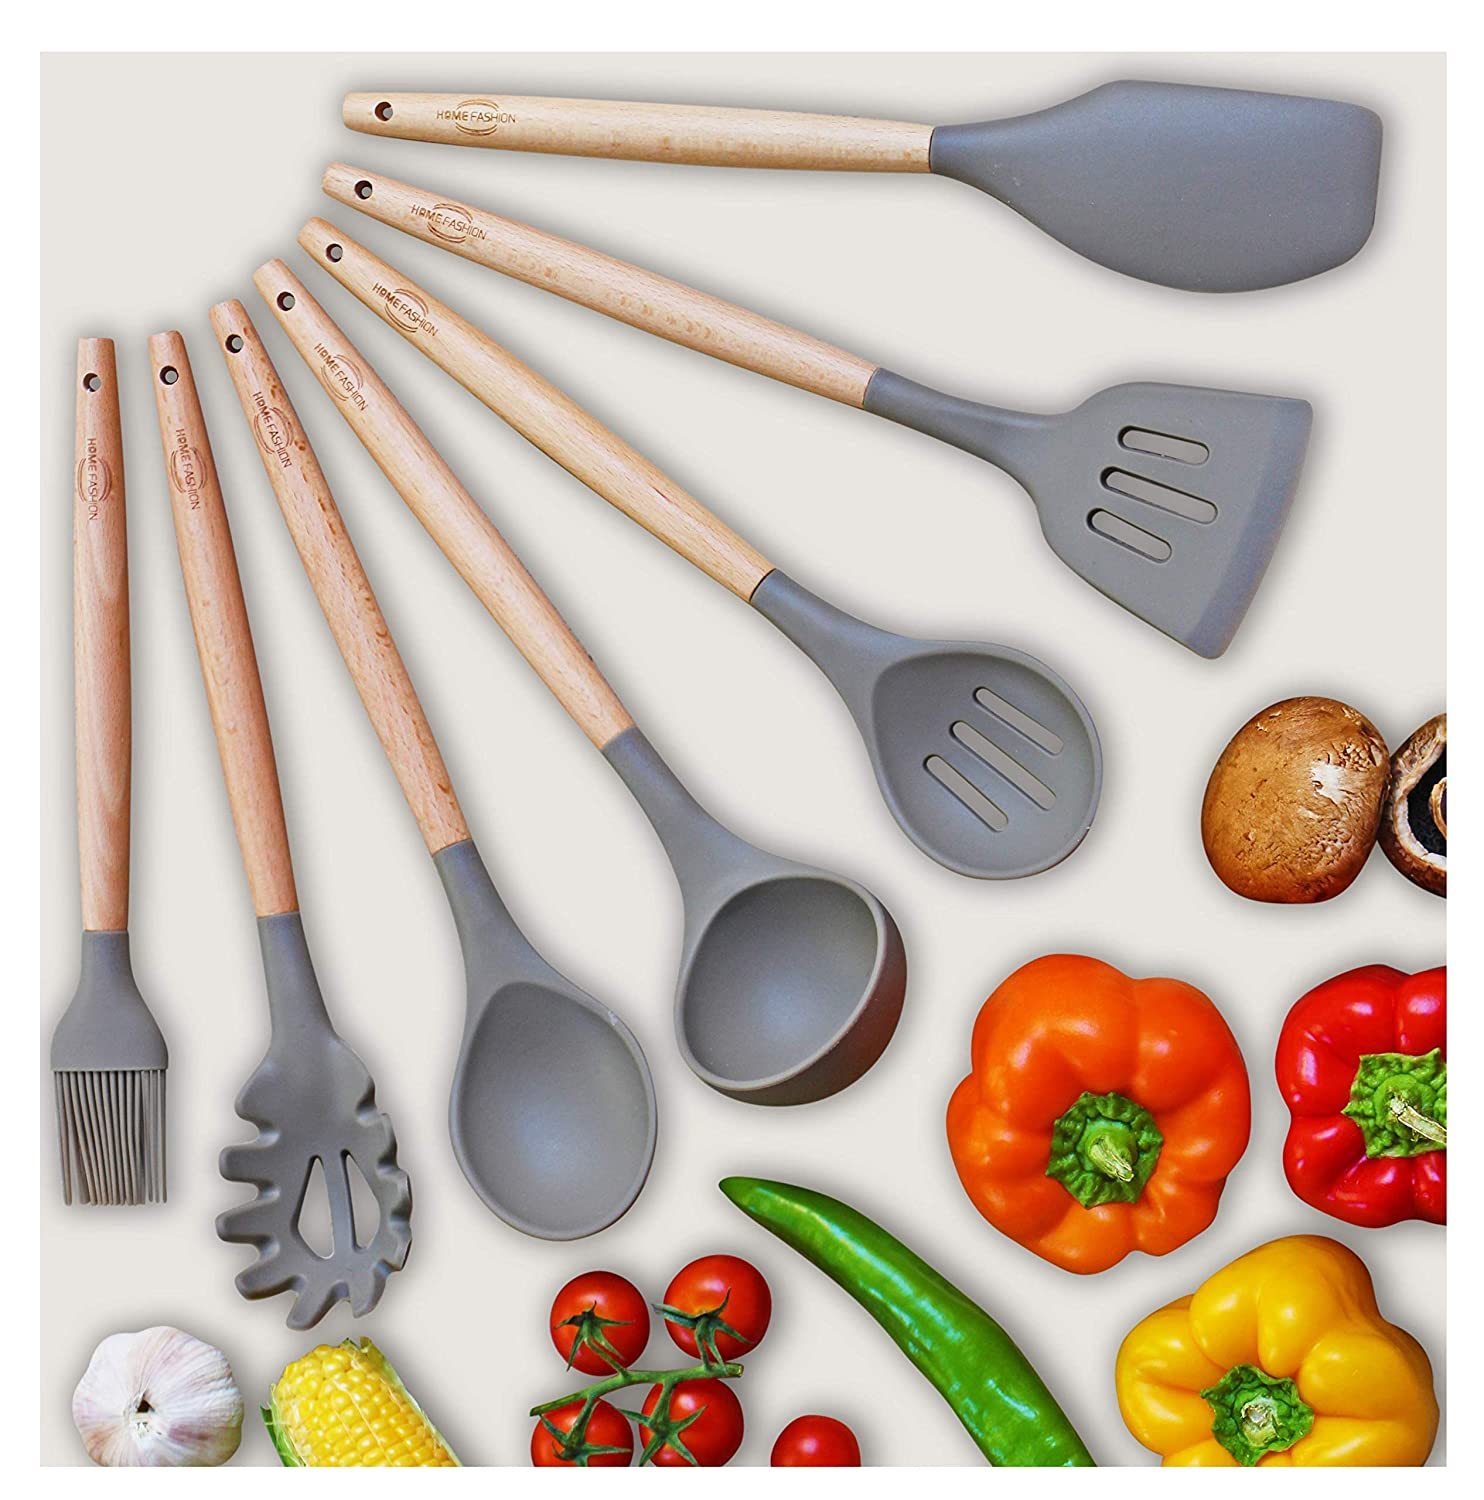 Kitchen Utensil Set - 7 Best Kitchen Utensils - Nonstick Cooking Spatulas - Silicone & Wood - For Pots & Pans - Spoon & Slotted Spoon, Ladle, Spatula, Pasta Server, Slotted Turner, Oil Brush + Gift Home fashion